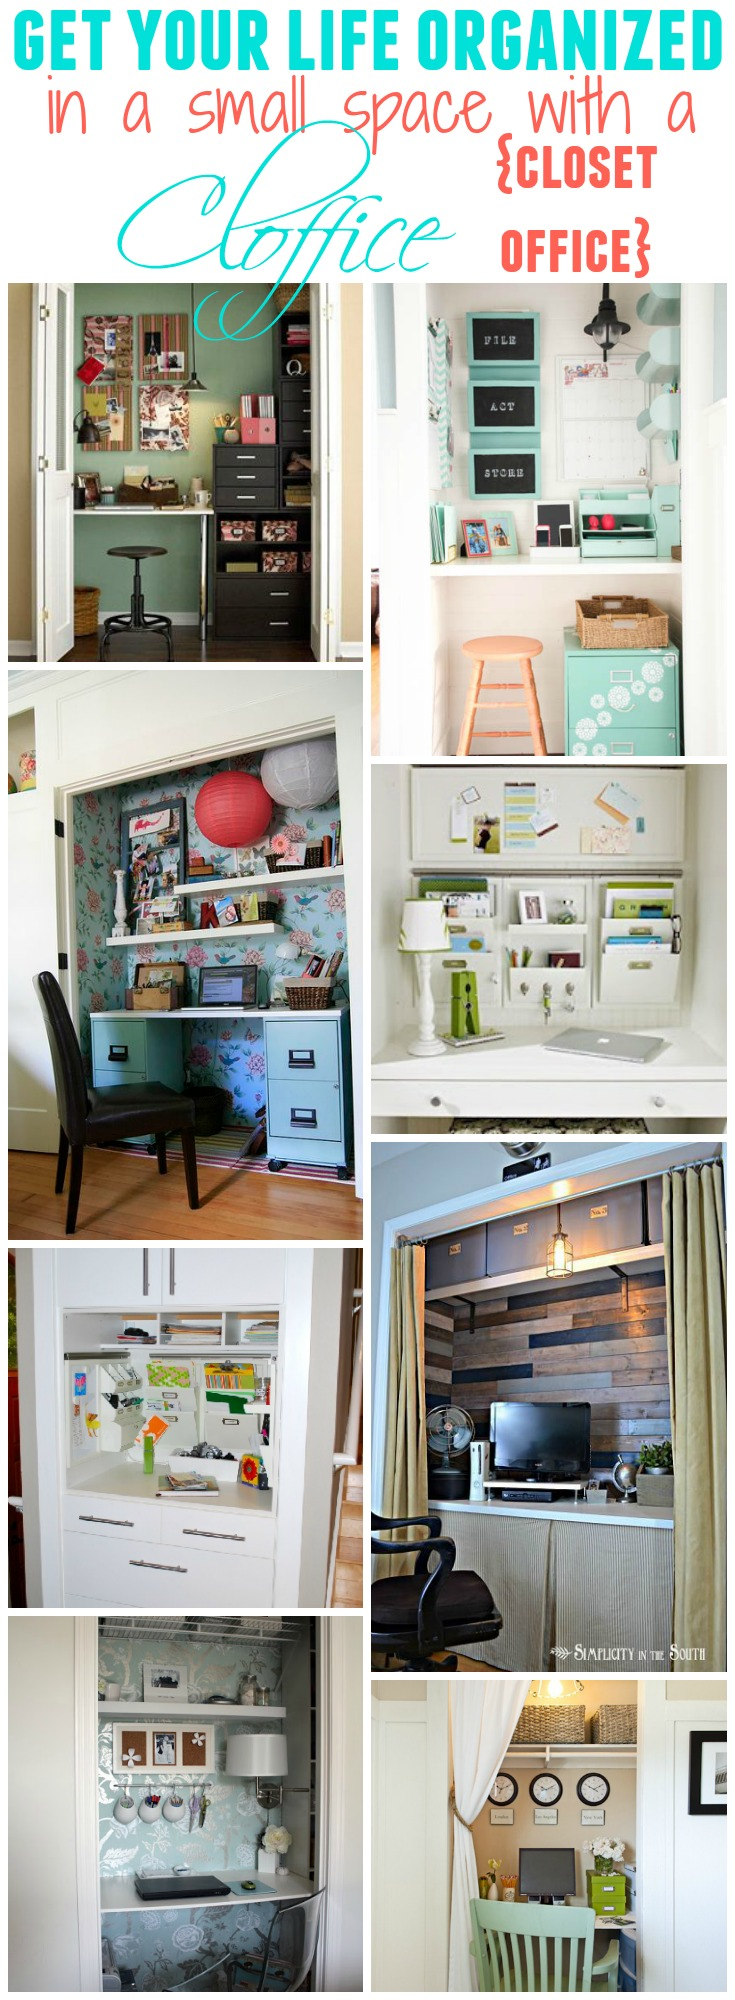 Get Organized In A Small Space With A Cloffice Office Closet The Happy Housie